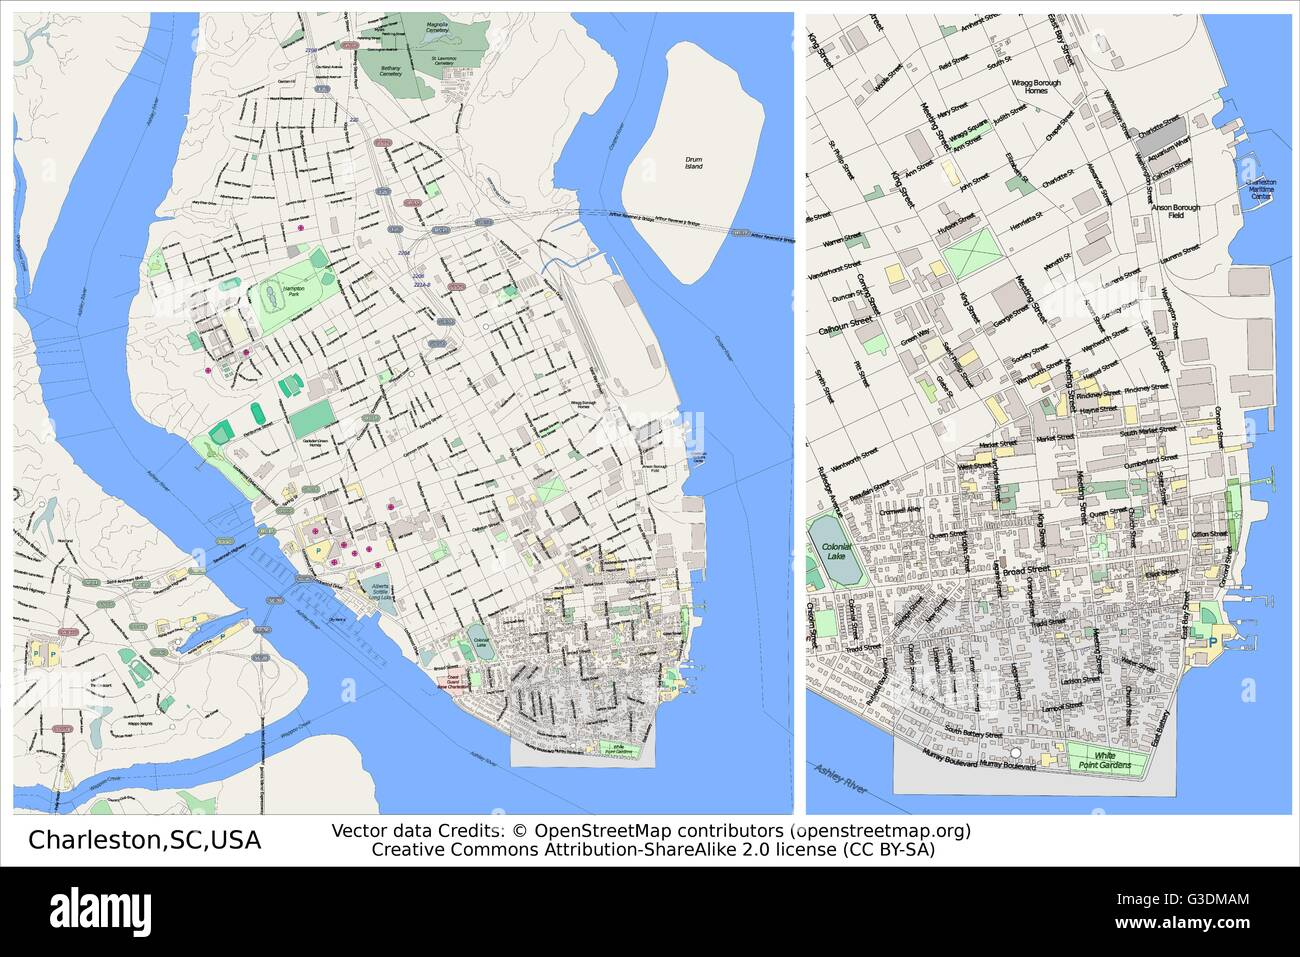 Charleston South Carolina City Map Stock Vector Art Illustration